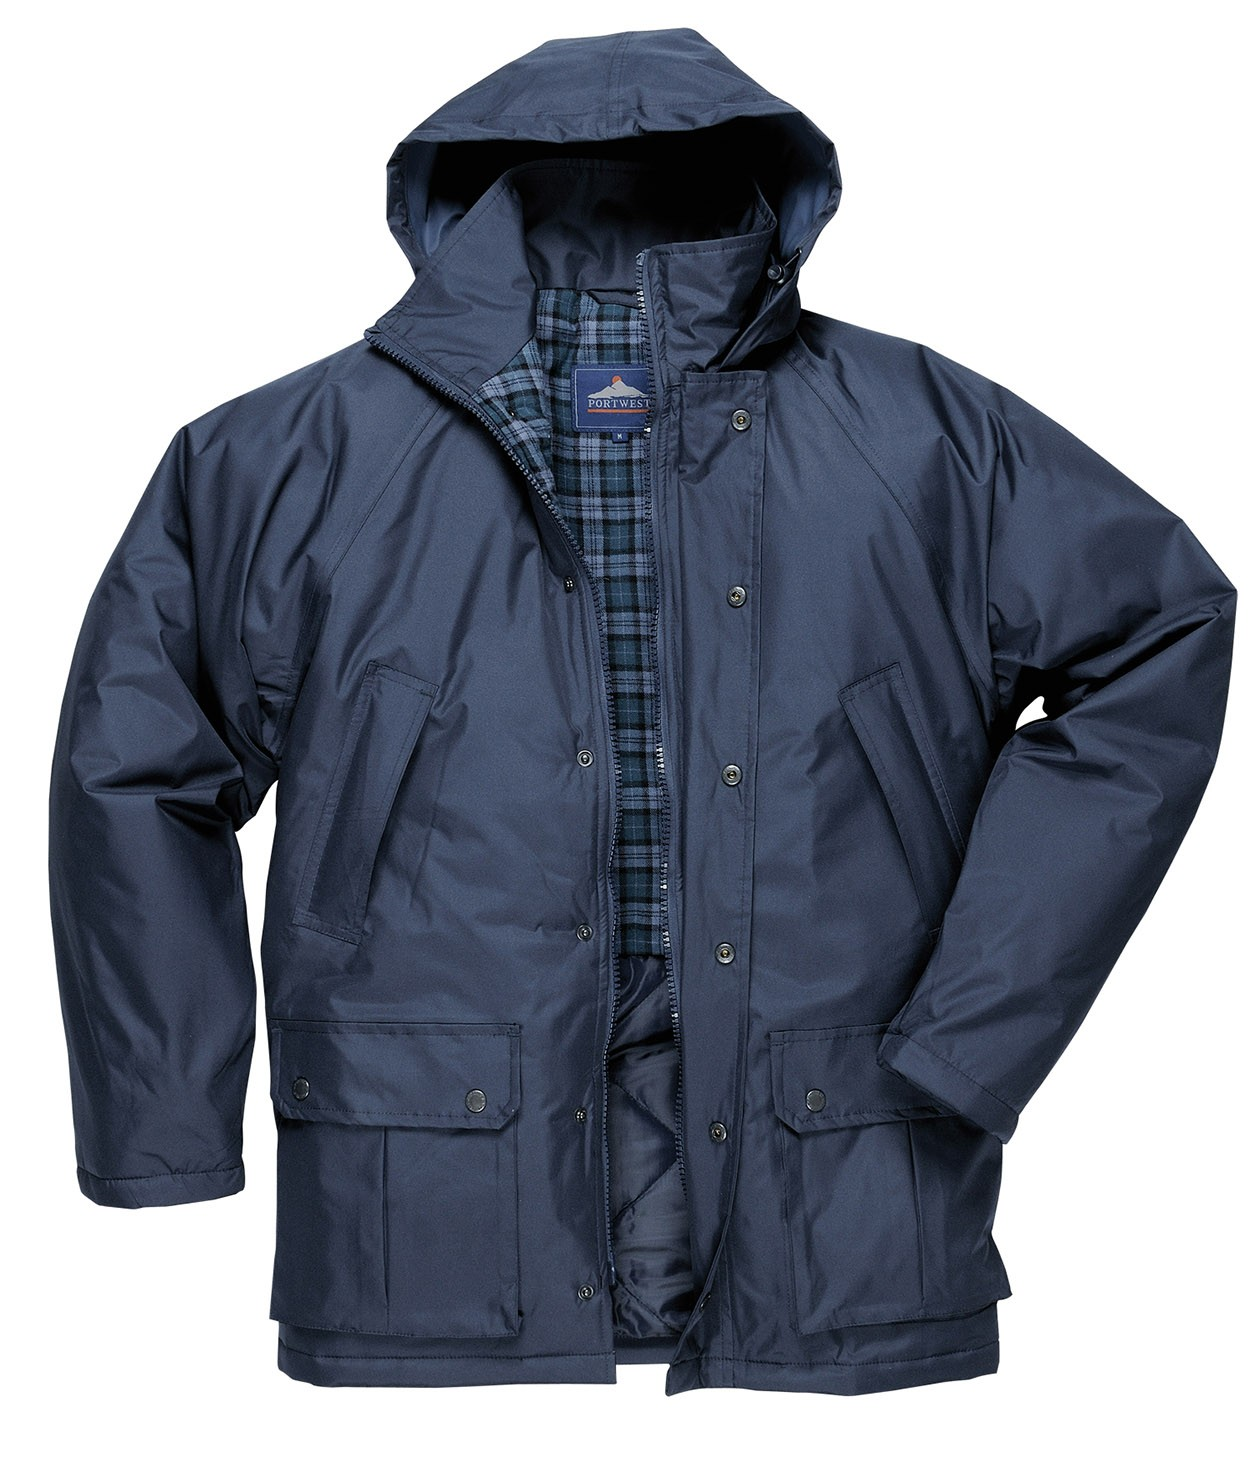 s521 dundee lined jacket 3176